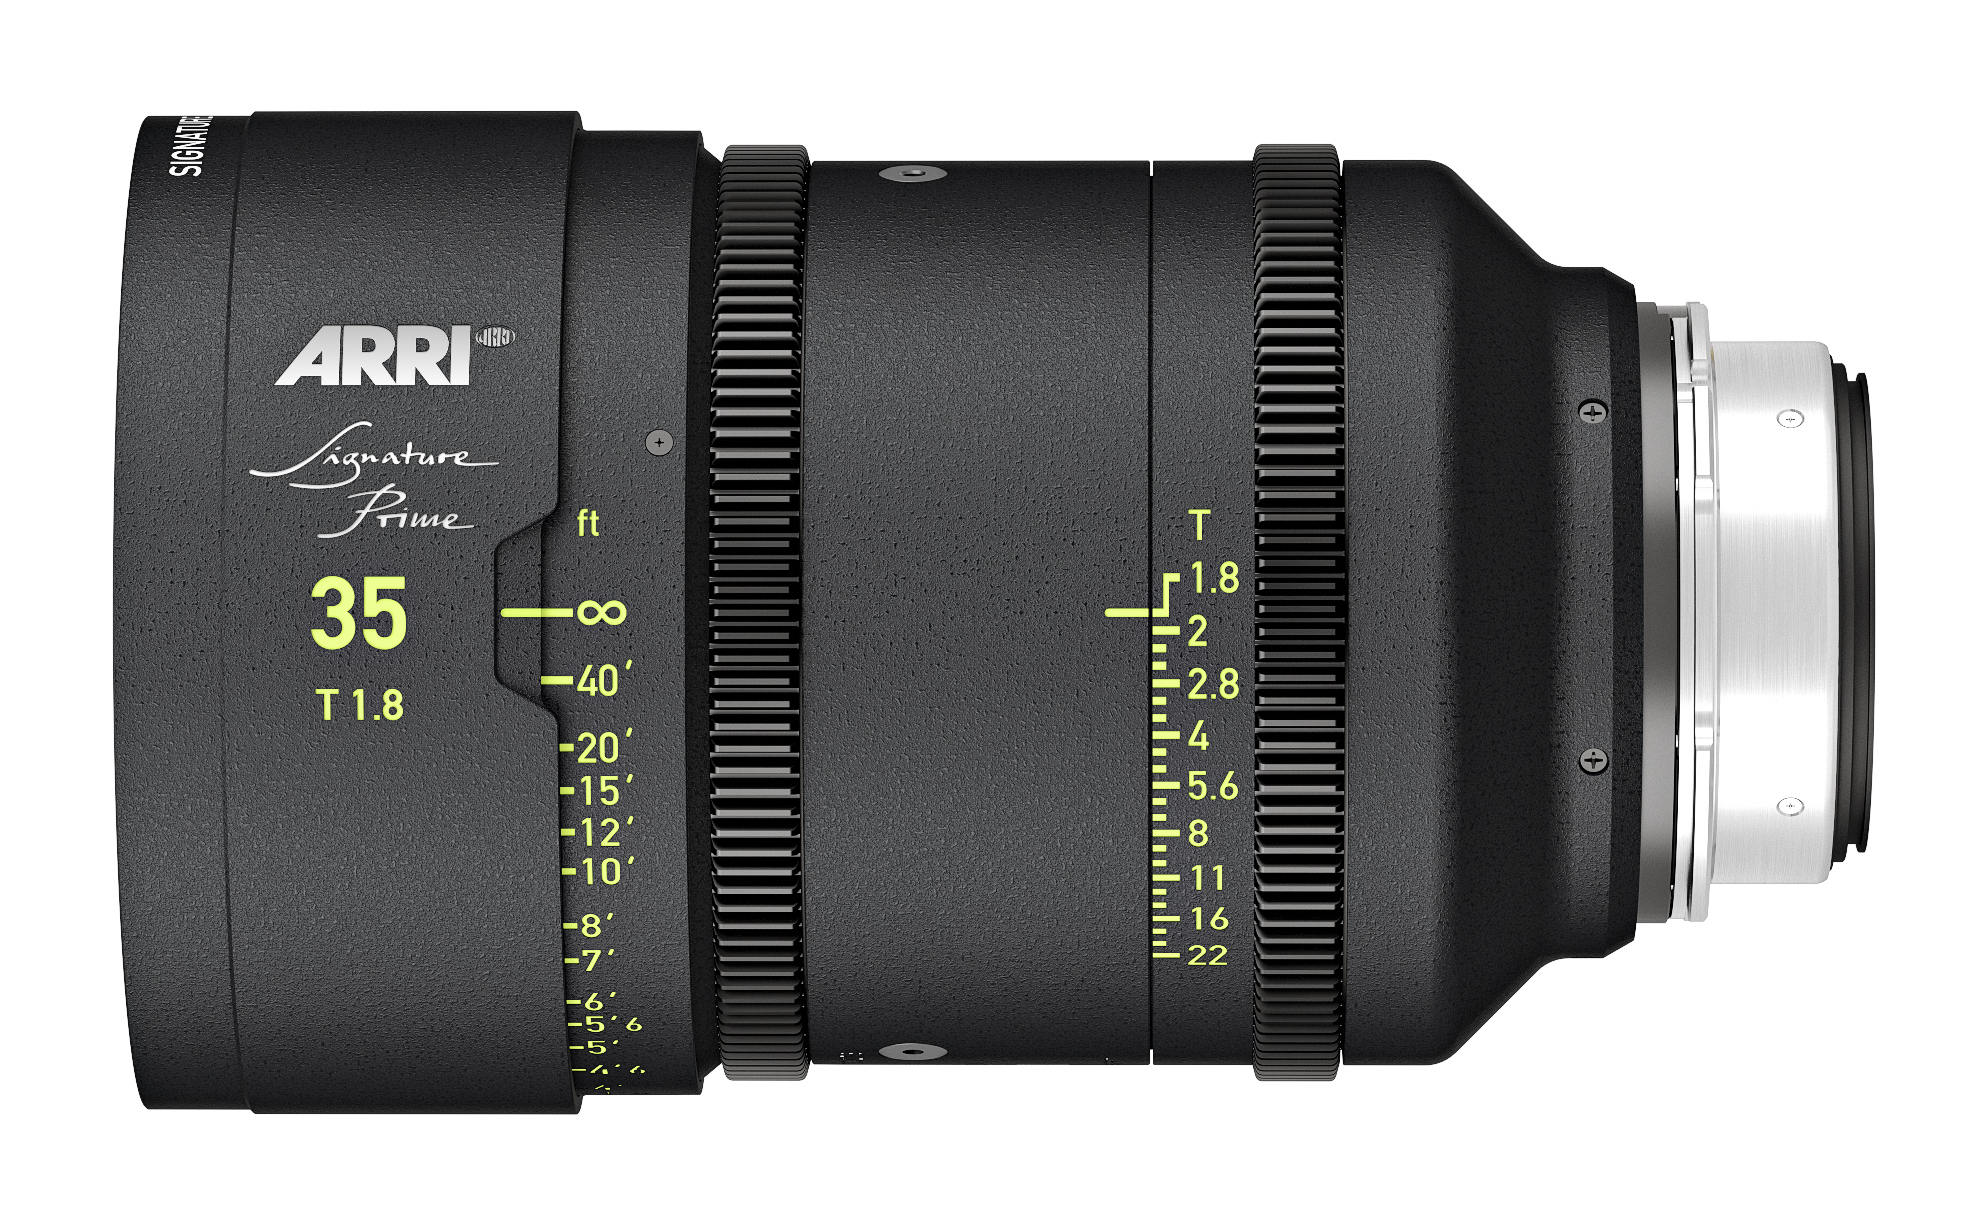 This week: ARRI at Koerner Camera in Seattle and Portland